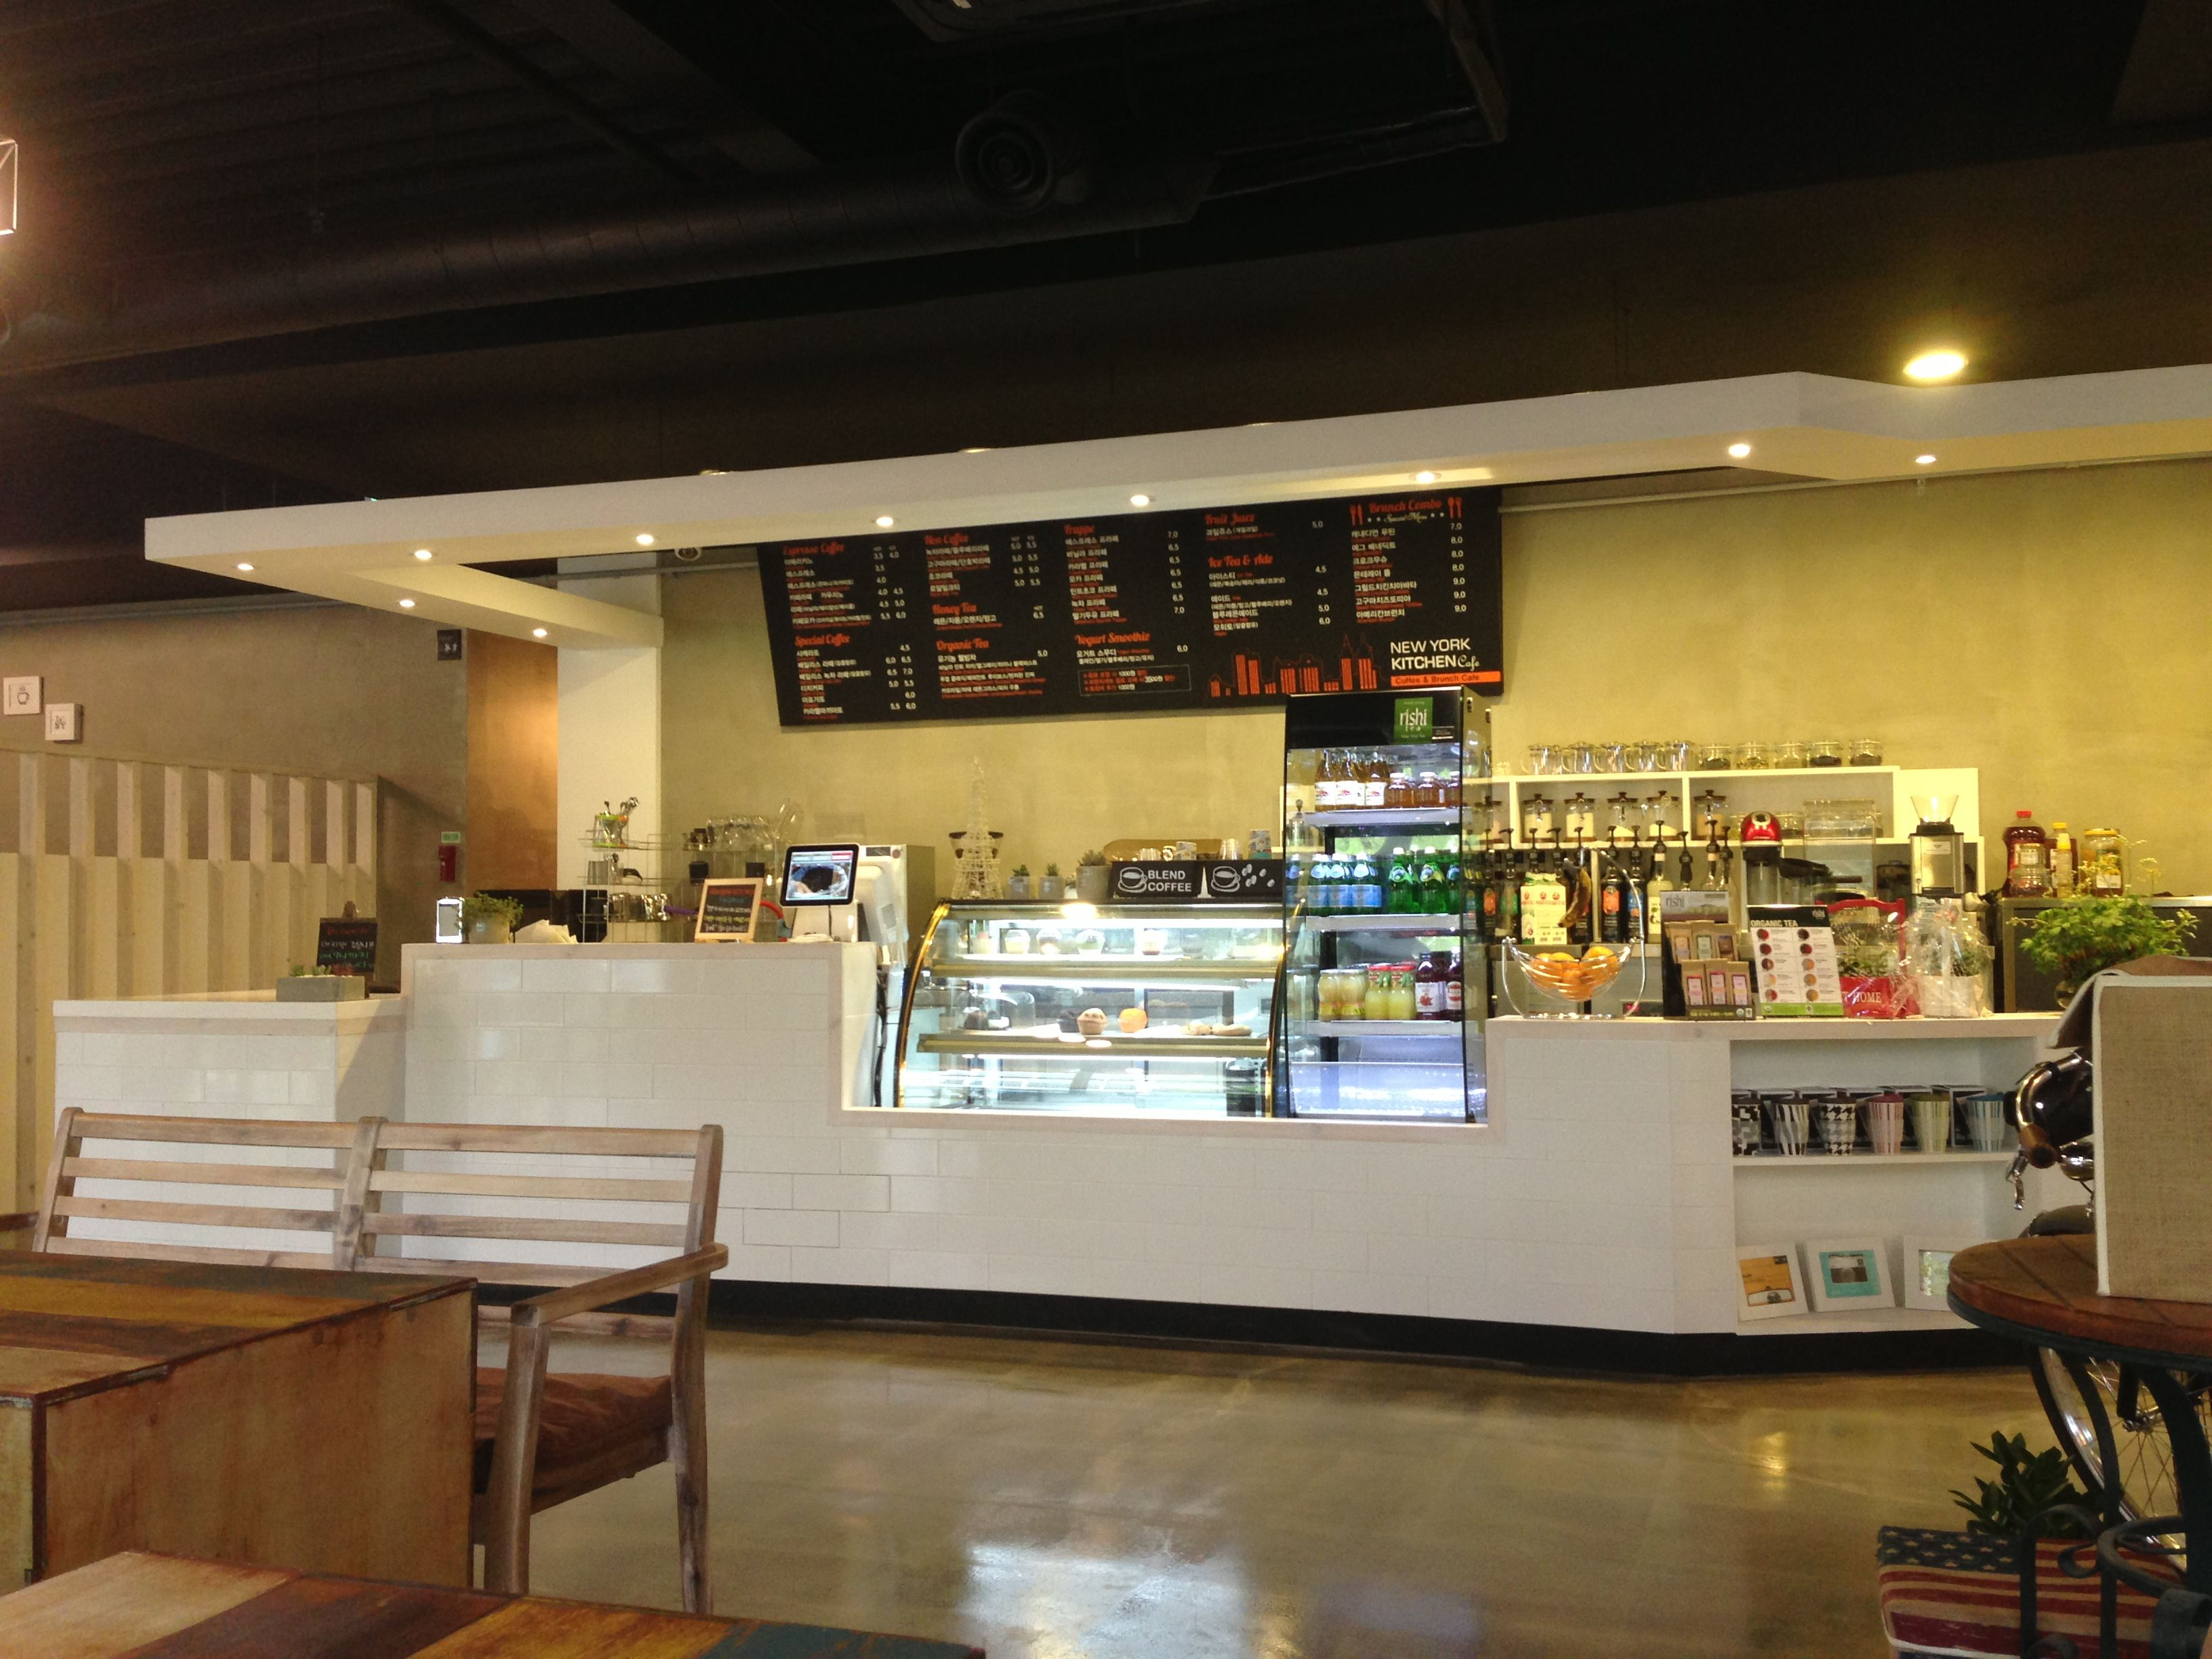 Cafe Counter Display Ideas Google Search Cafe Counter Cafe